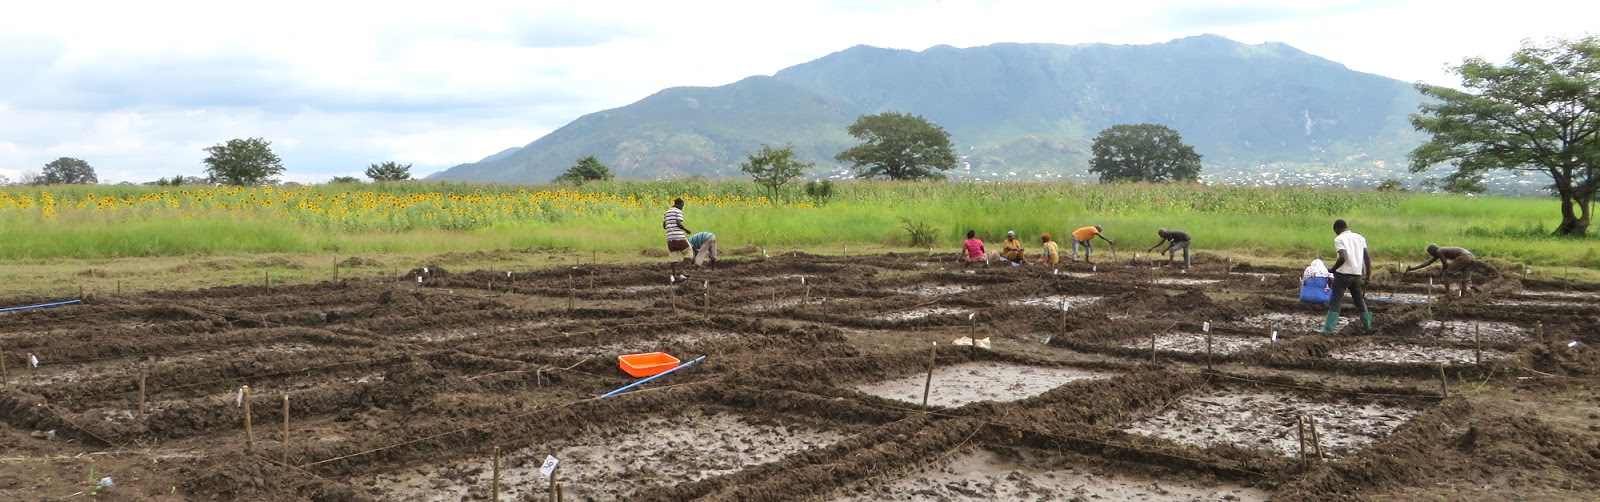 water saving rice production systems - 1600×502